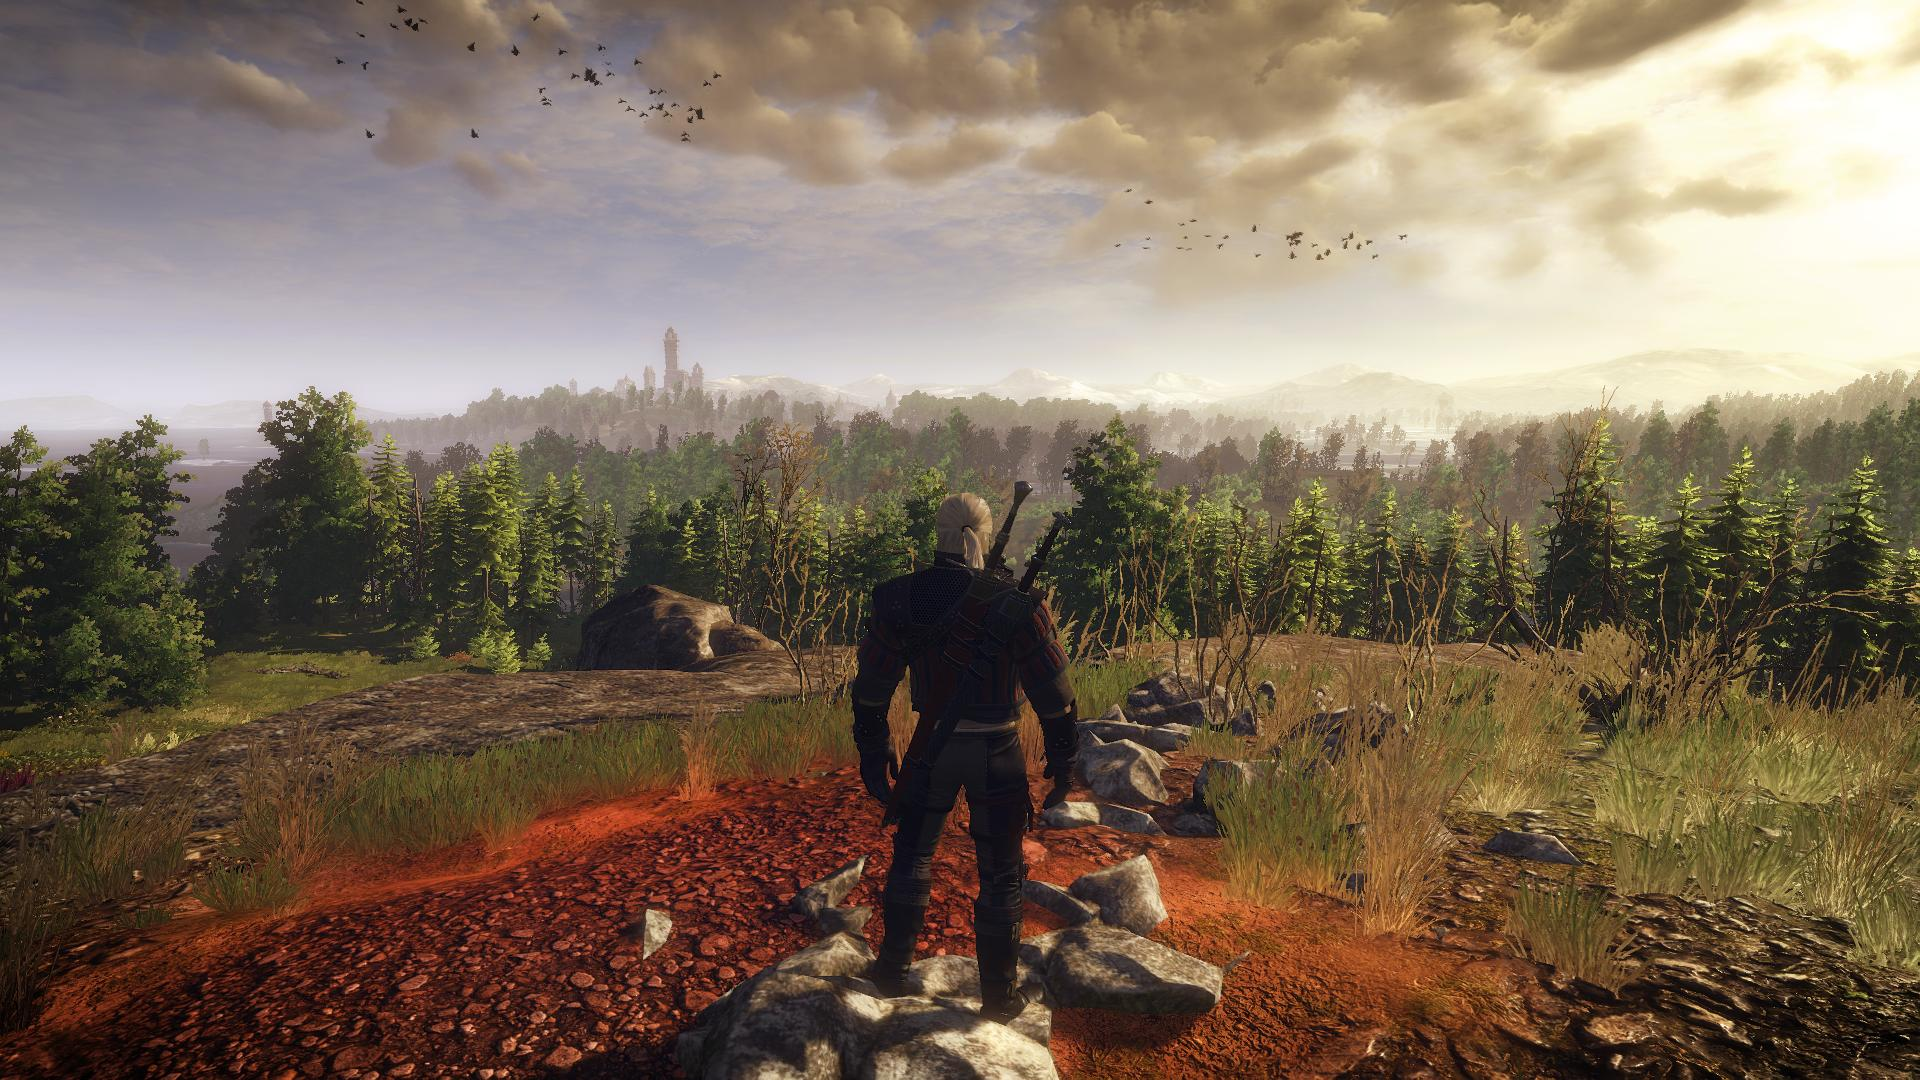 The Witcher 3 Mods Archives - Geek Reply